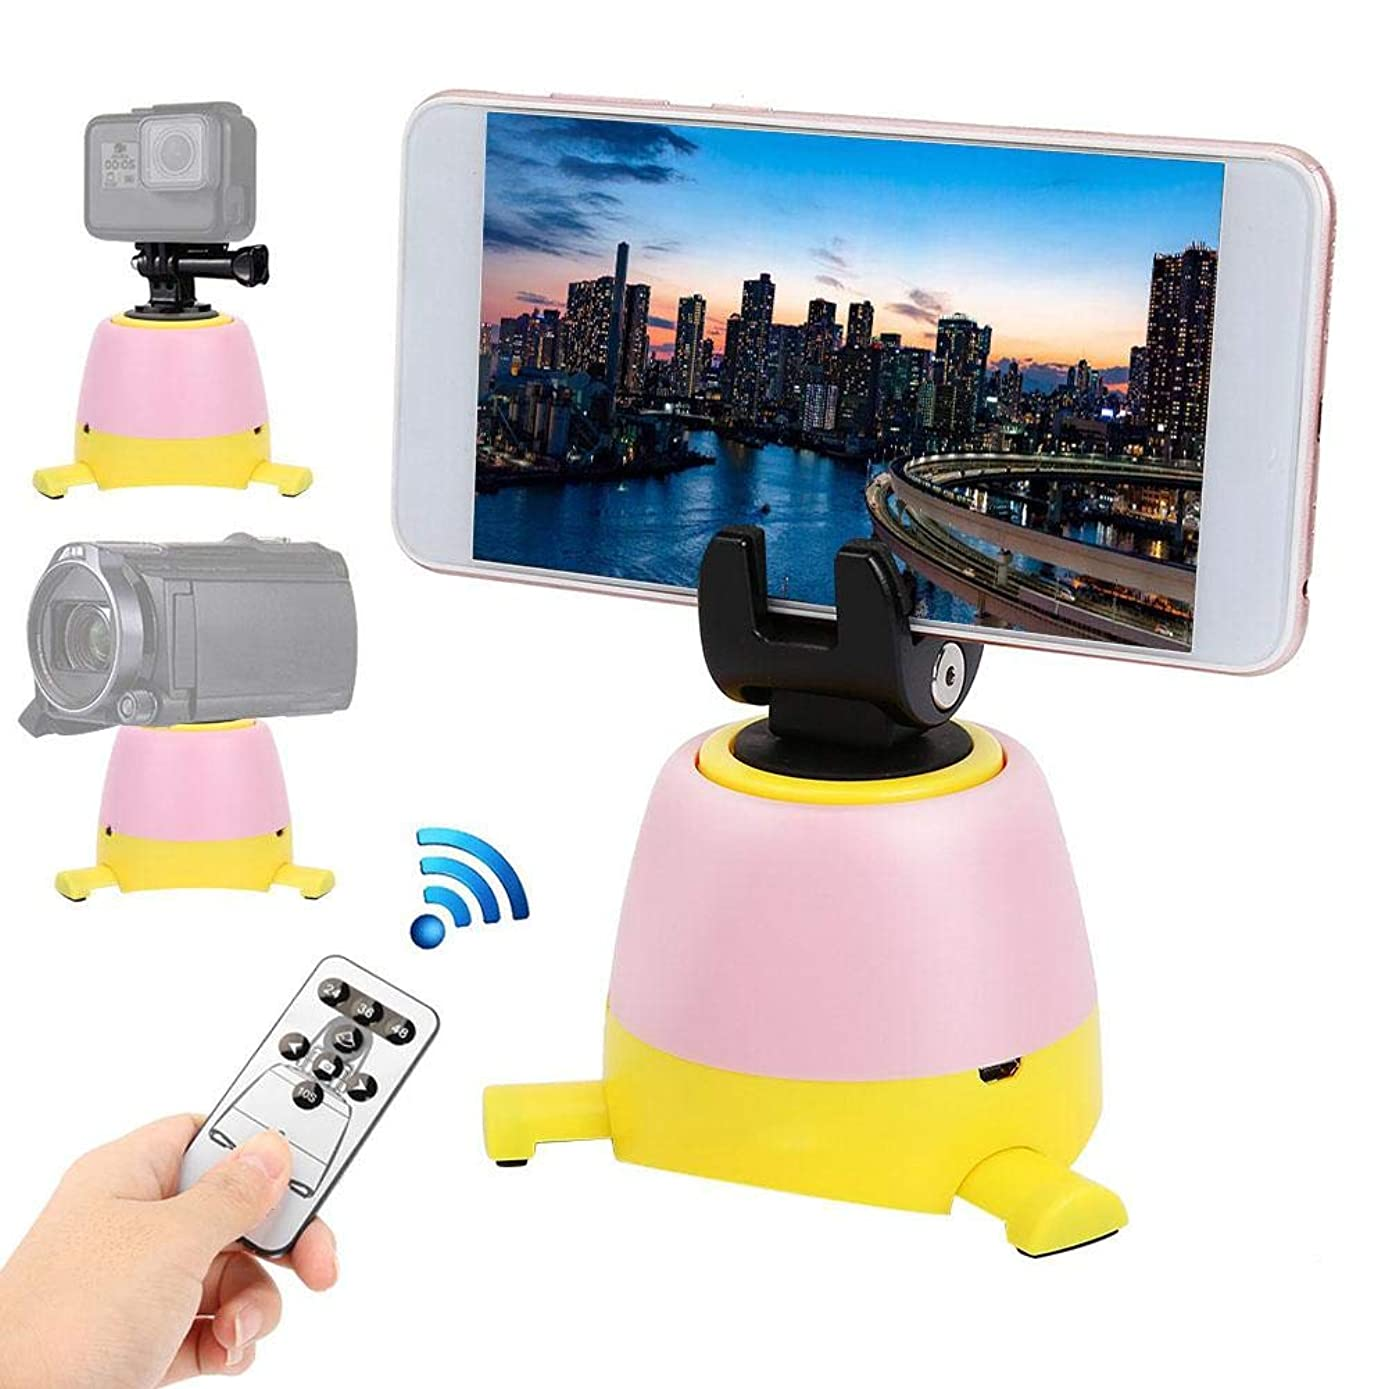 Serounder Electronic 360 Degree Rotation Panoramic Shooting Tripod Ball Head Compatible with Bluetooth with Round Tray Support Control Remote for Smartphones, Action Camera, DSLR Cameras(Yellow)